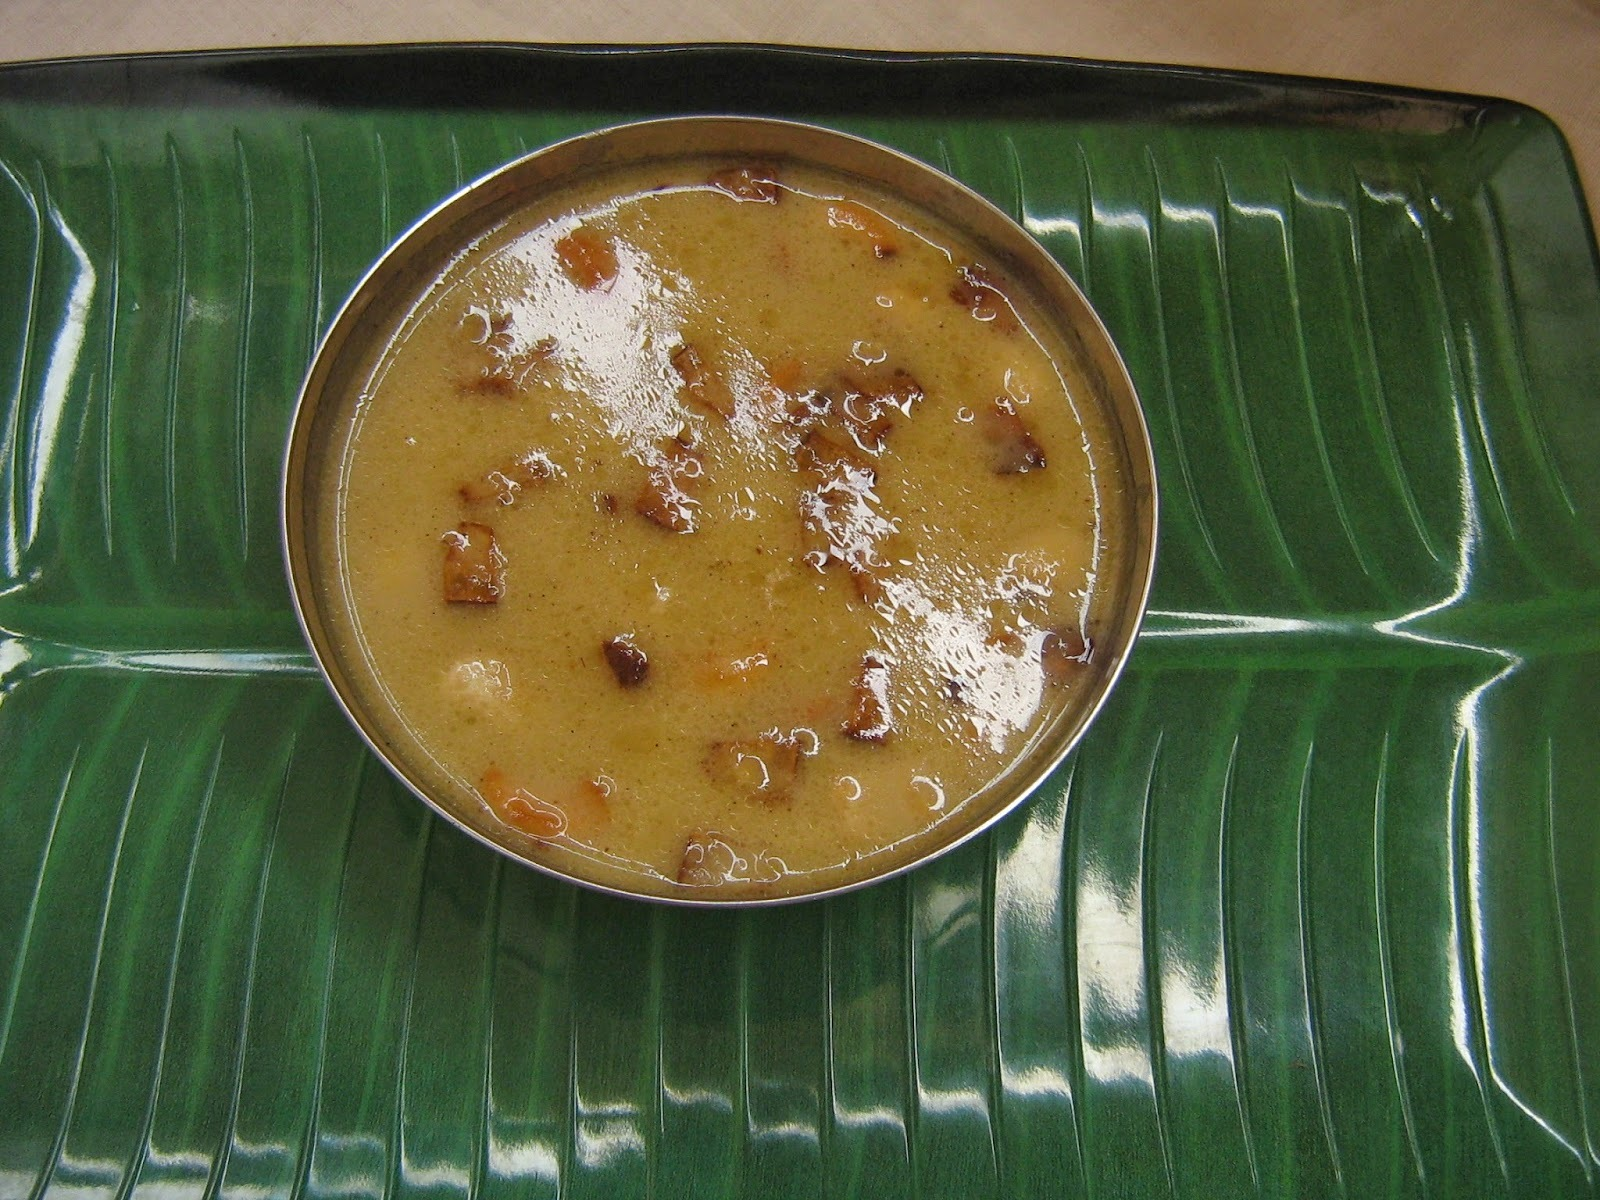 Cheru parippu payasam / Parippu pradhaman/ Lentil in coconut milk and jaggery pudding recipe